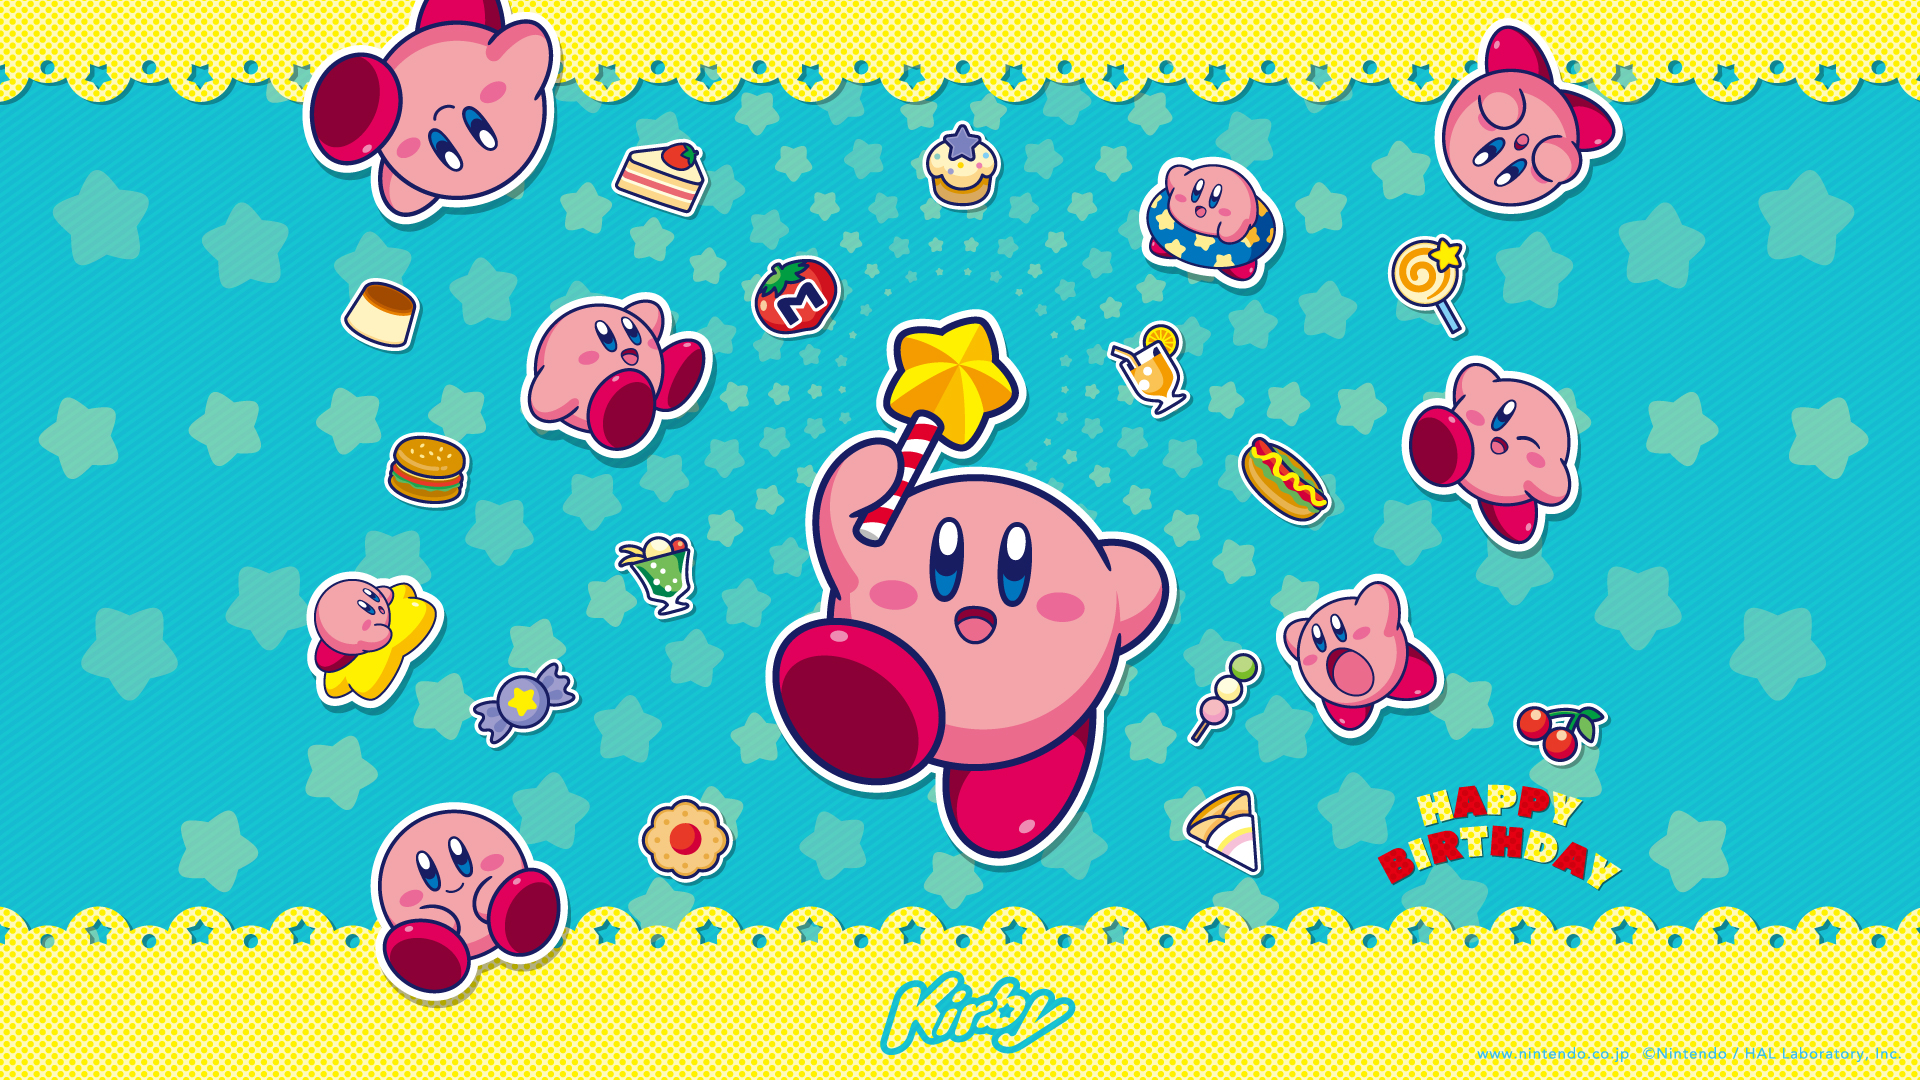 Kirby Quot Happy Birthday Quot Official Wallpaper Available